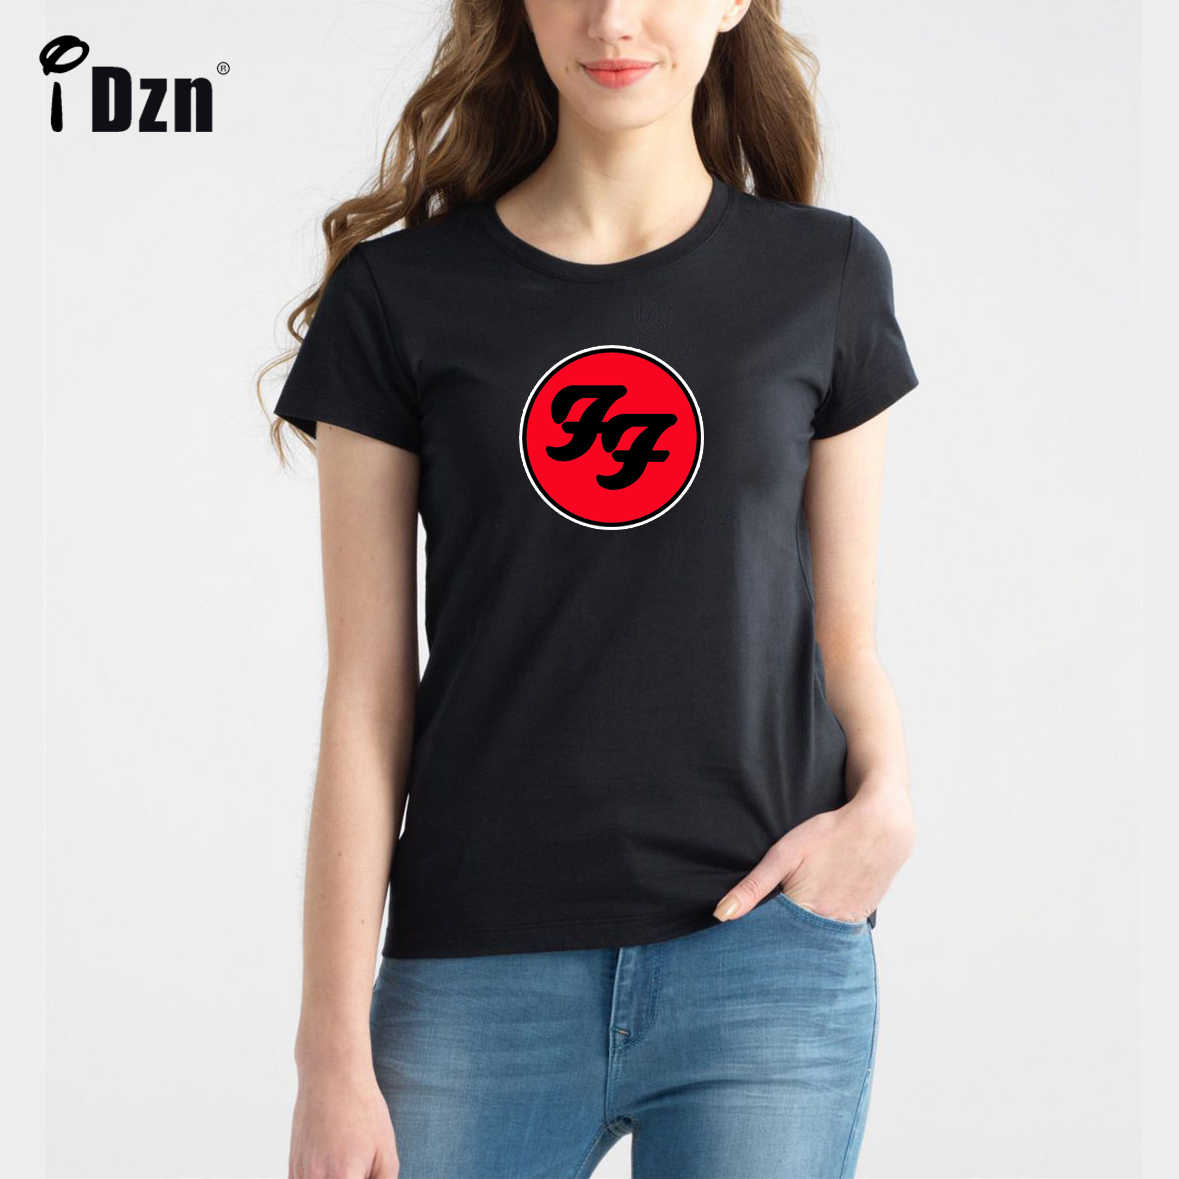 Summer Casual Women T-shirts Compton MUSE Joey Graceffa Foo Fighters Hard Rock And Roll Band Girl Short Sleeve Print Tees Tops